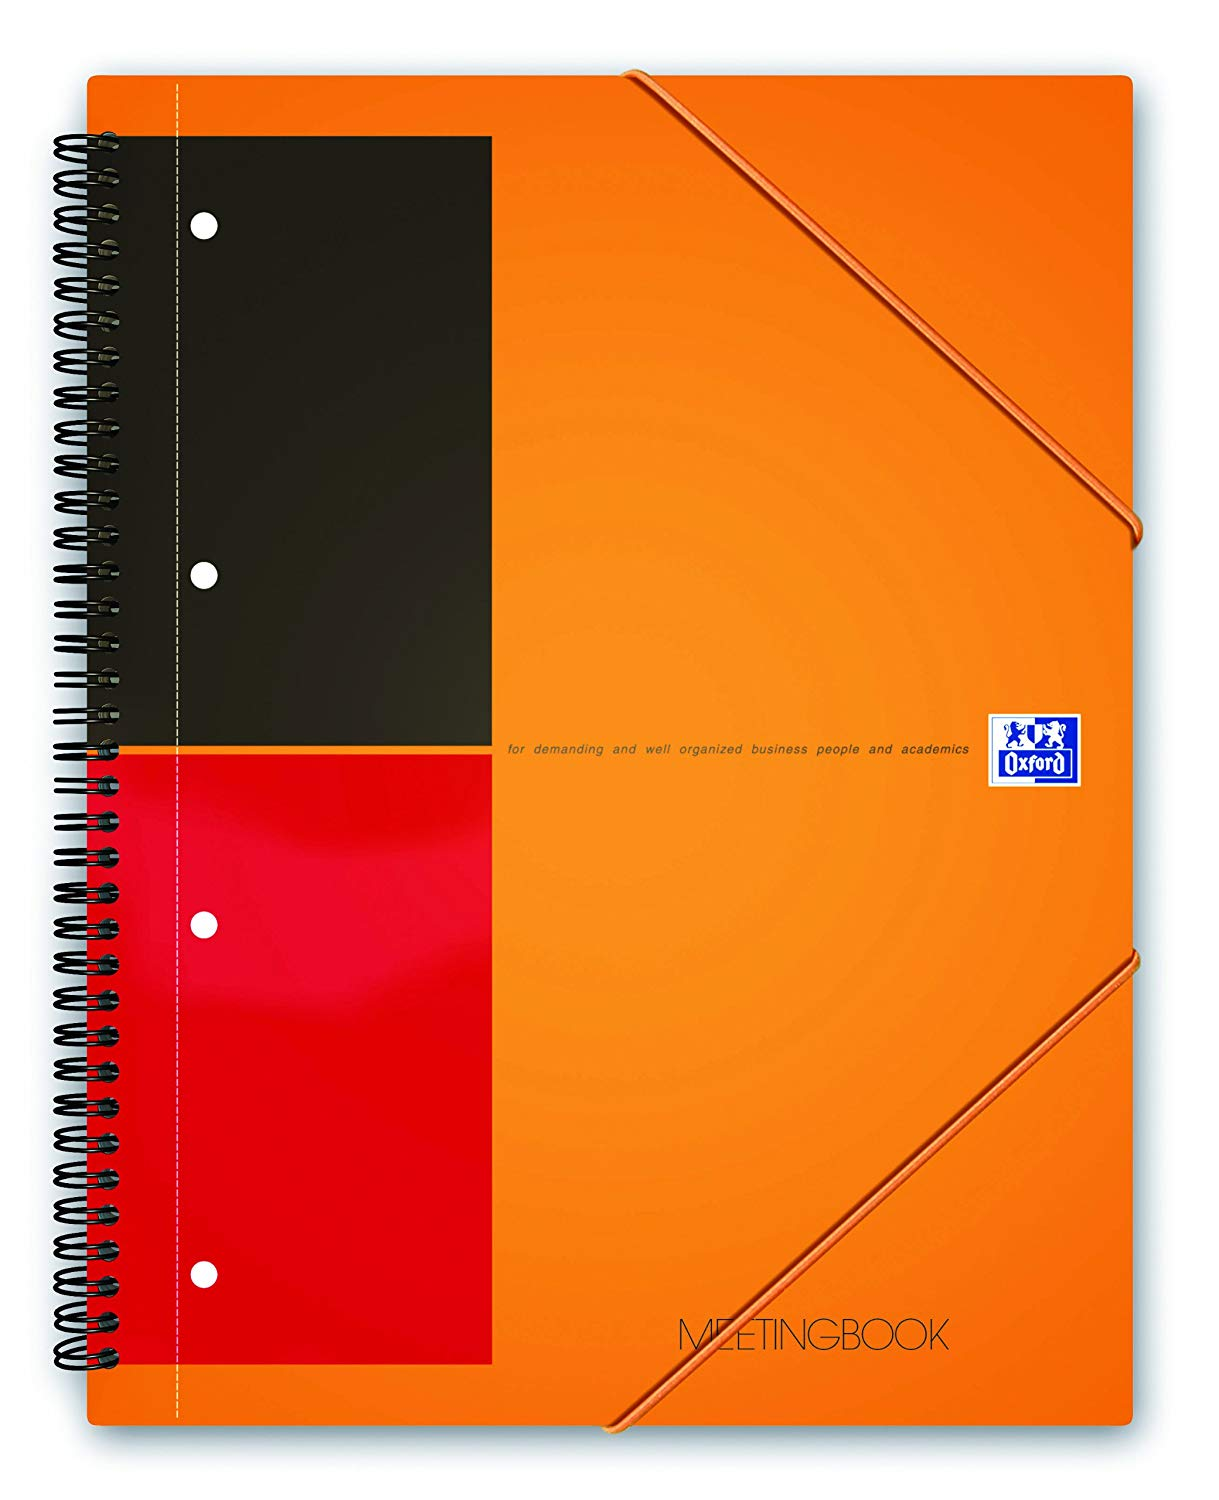 Caiet cu spirala A5+, OXFORD International Meetingbook, 80 file-80g/mp, 10 perf., coperta PP - dicta